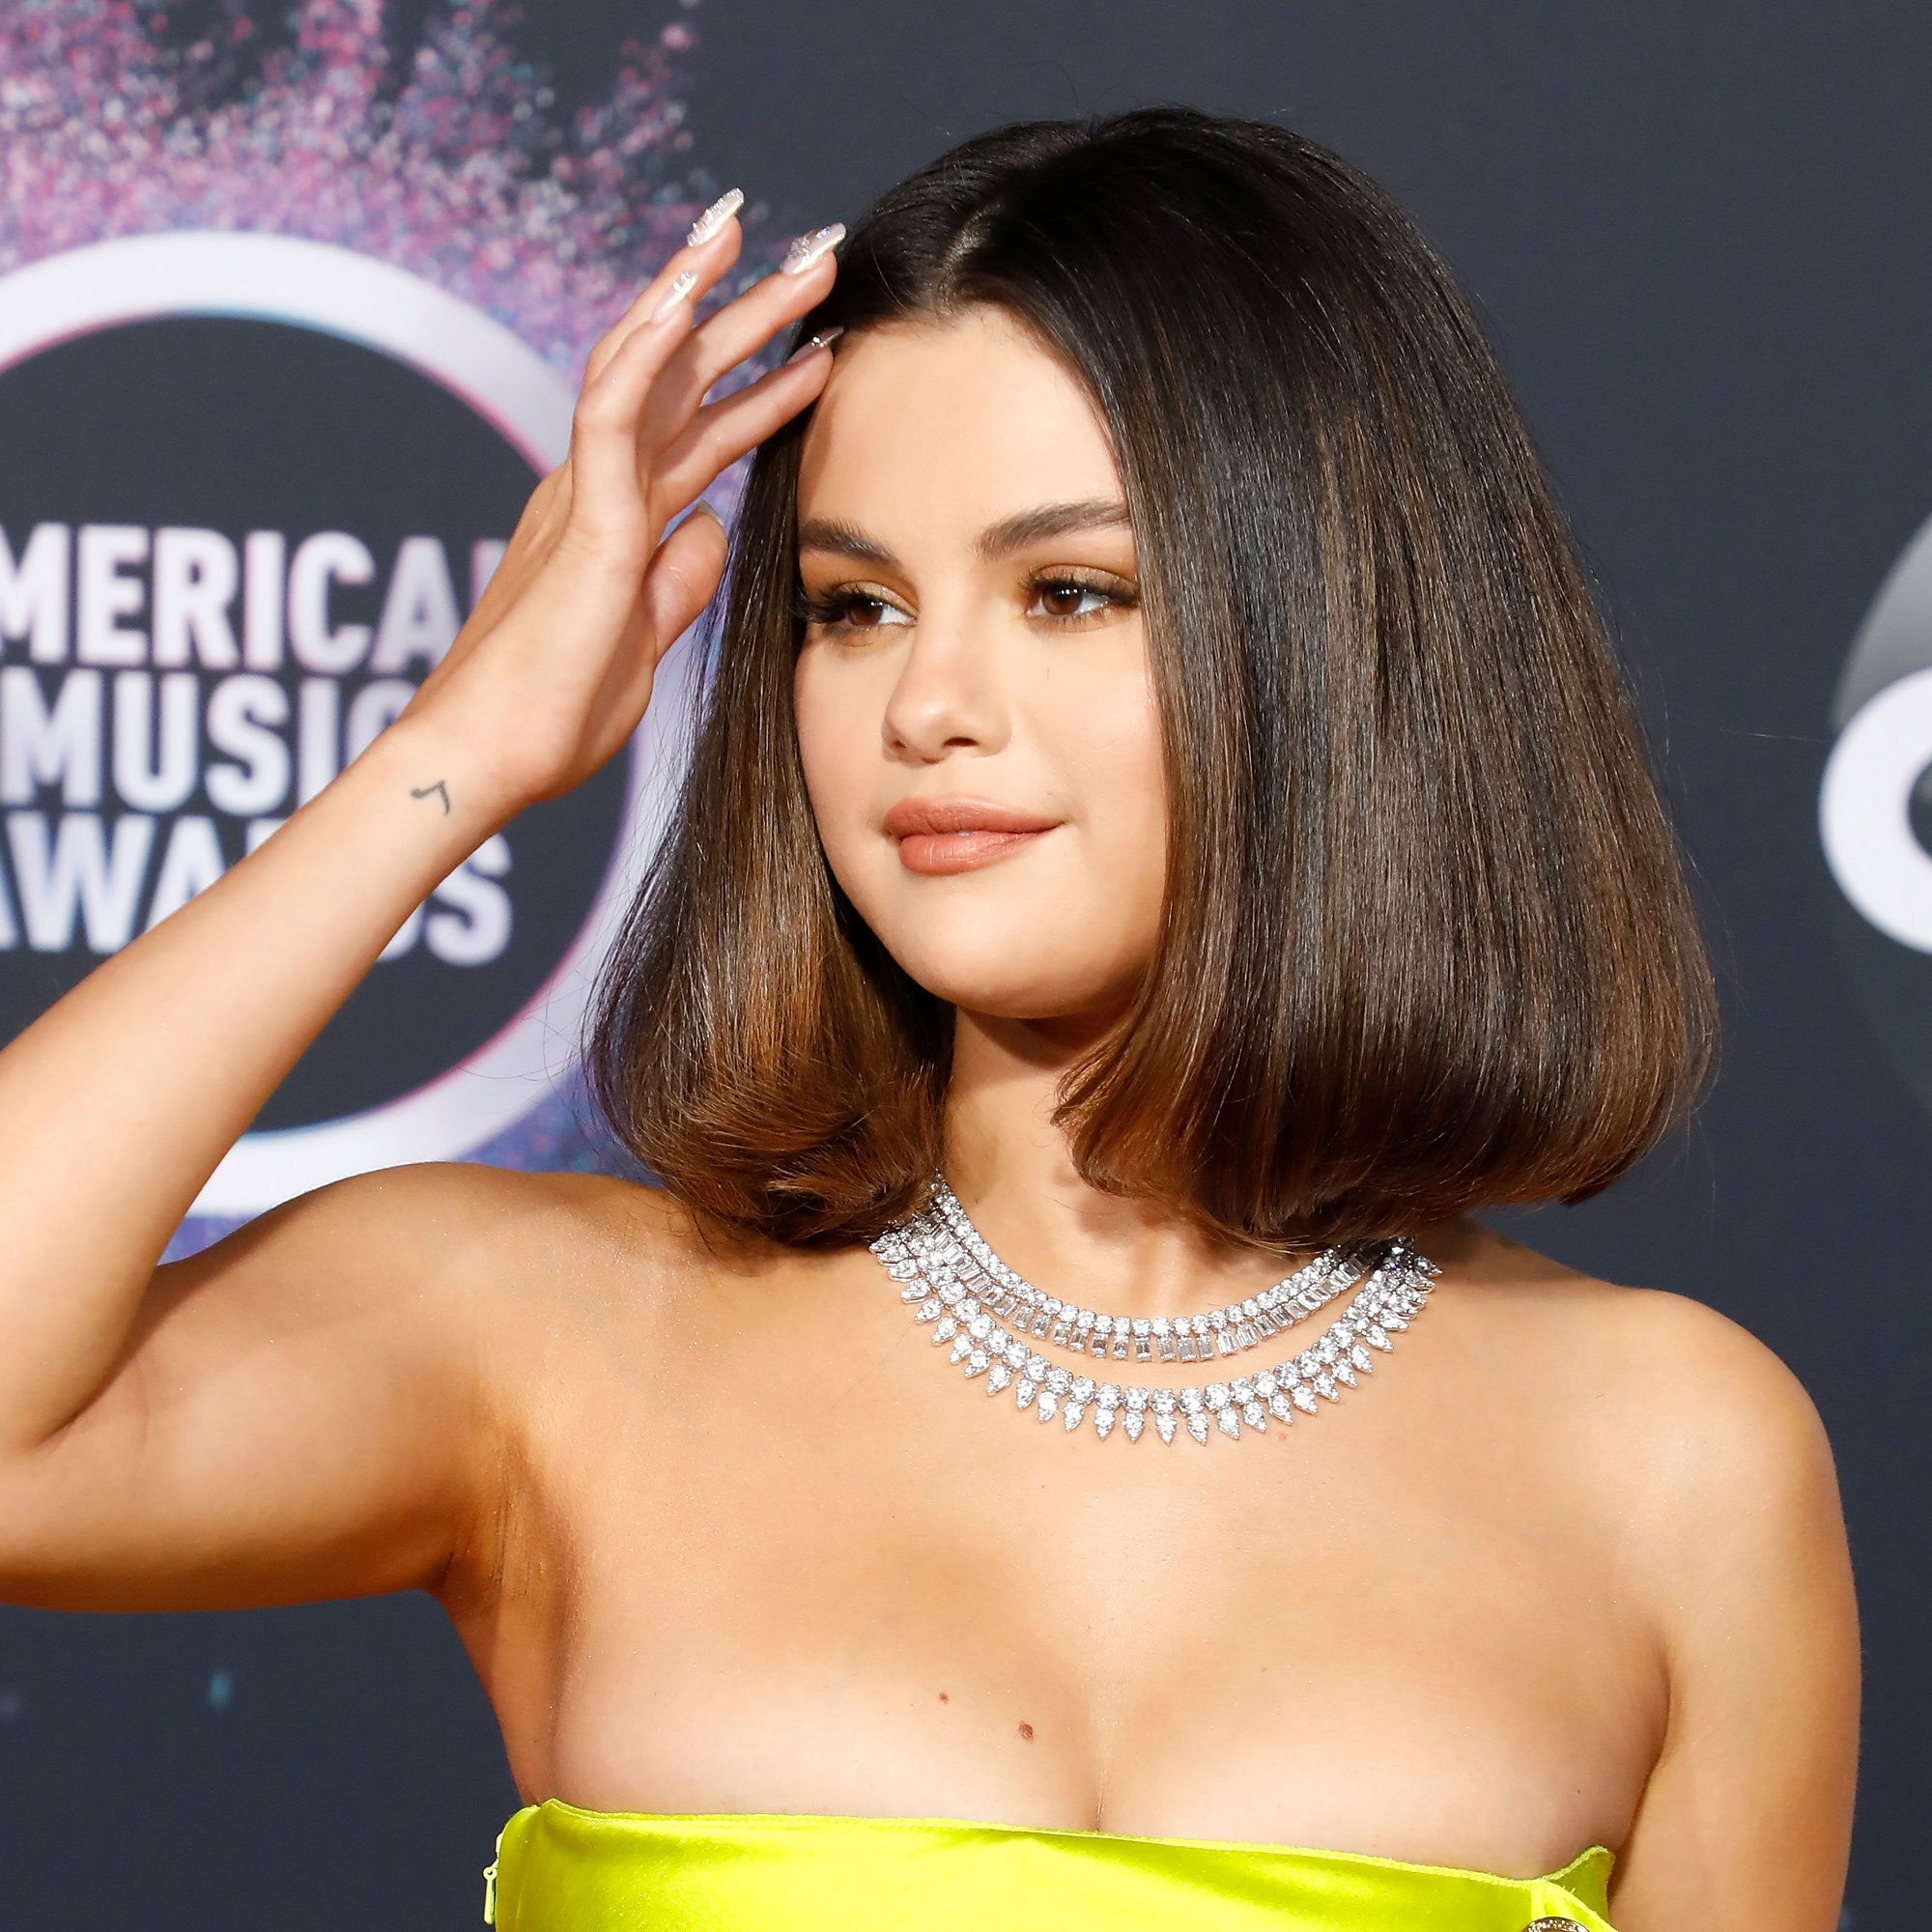 Selena Gomez Hot Decollete - Selena Gomez Hot Decollete